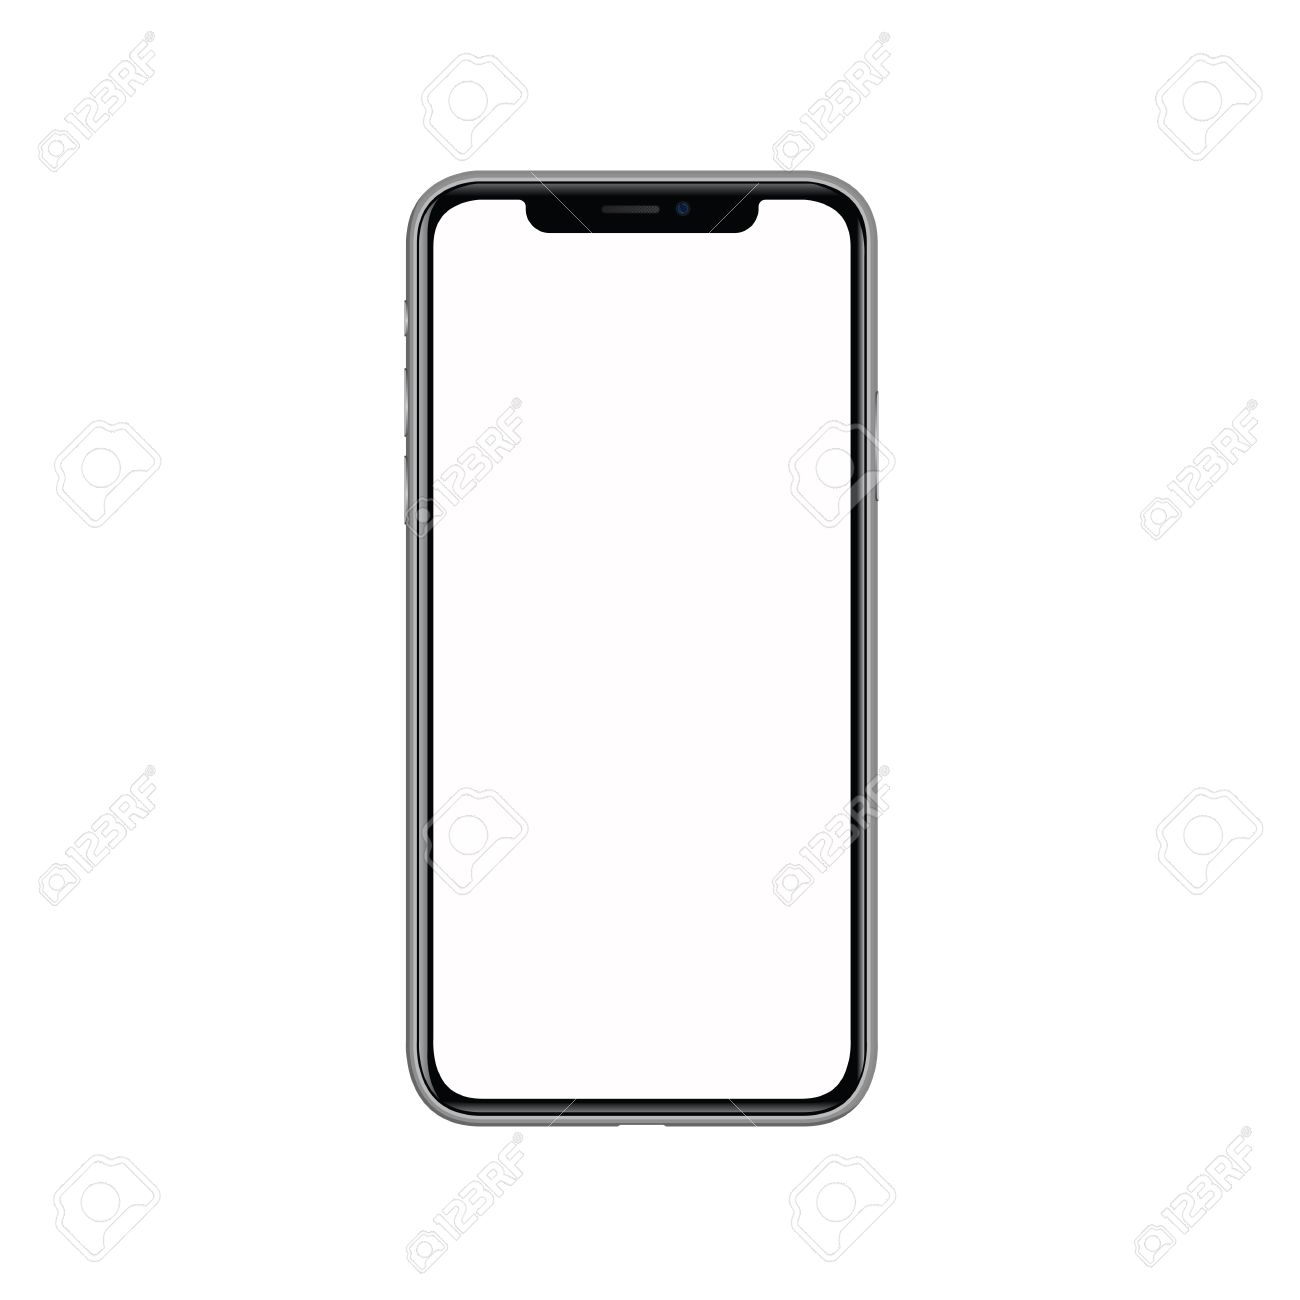 Iphone X With Blank White Screen Isolated On White Background